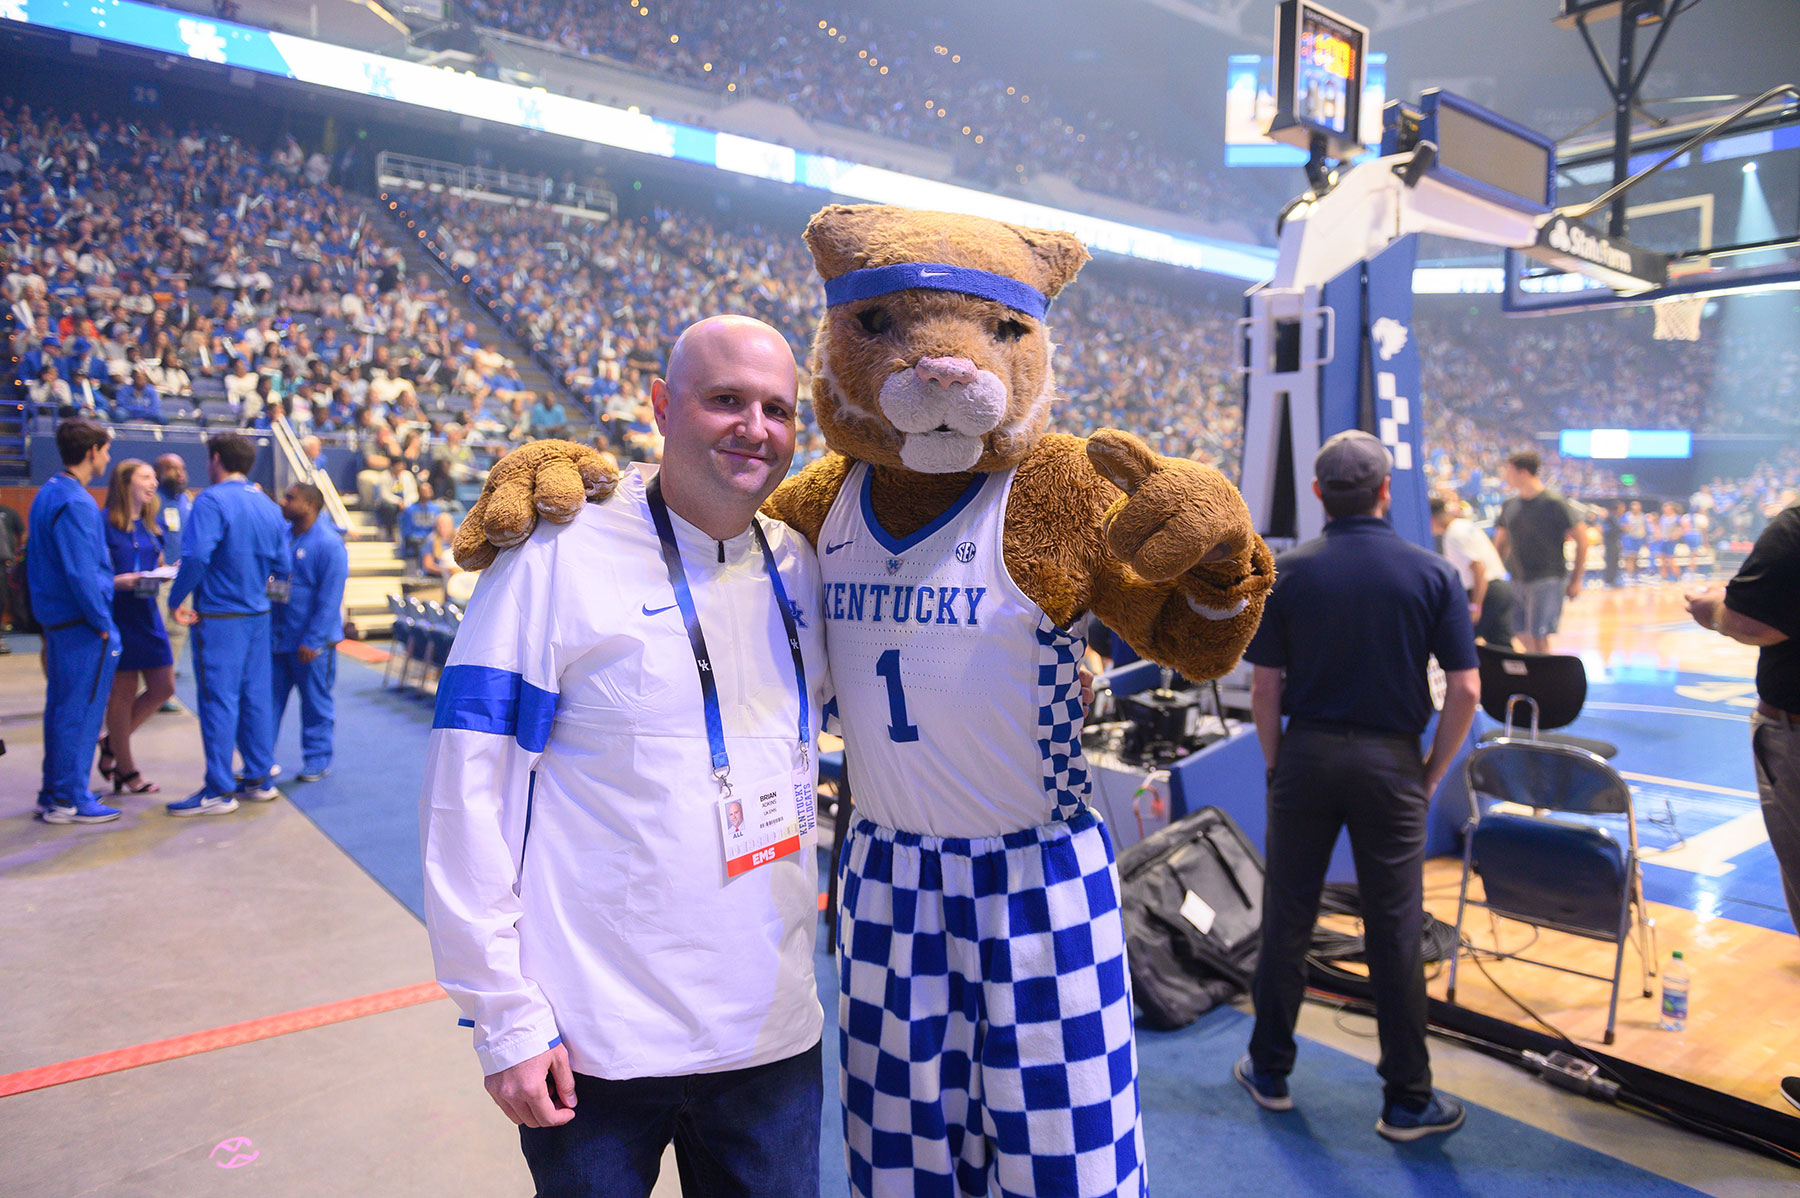 Dr. Adkin stops for a photo with the wildcat mascot.